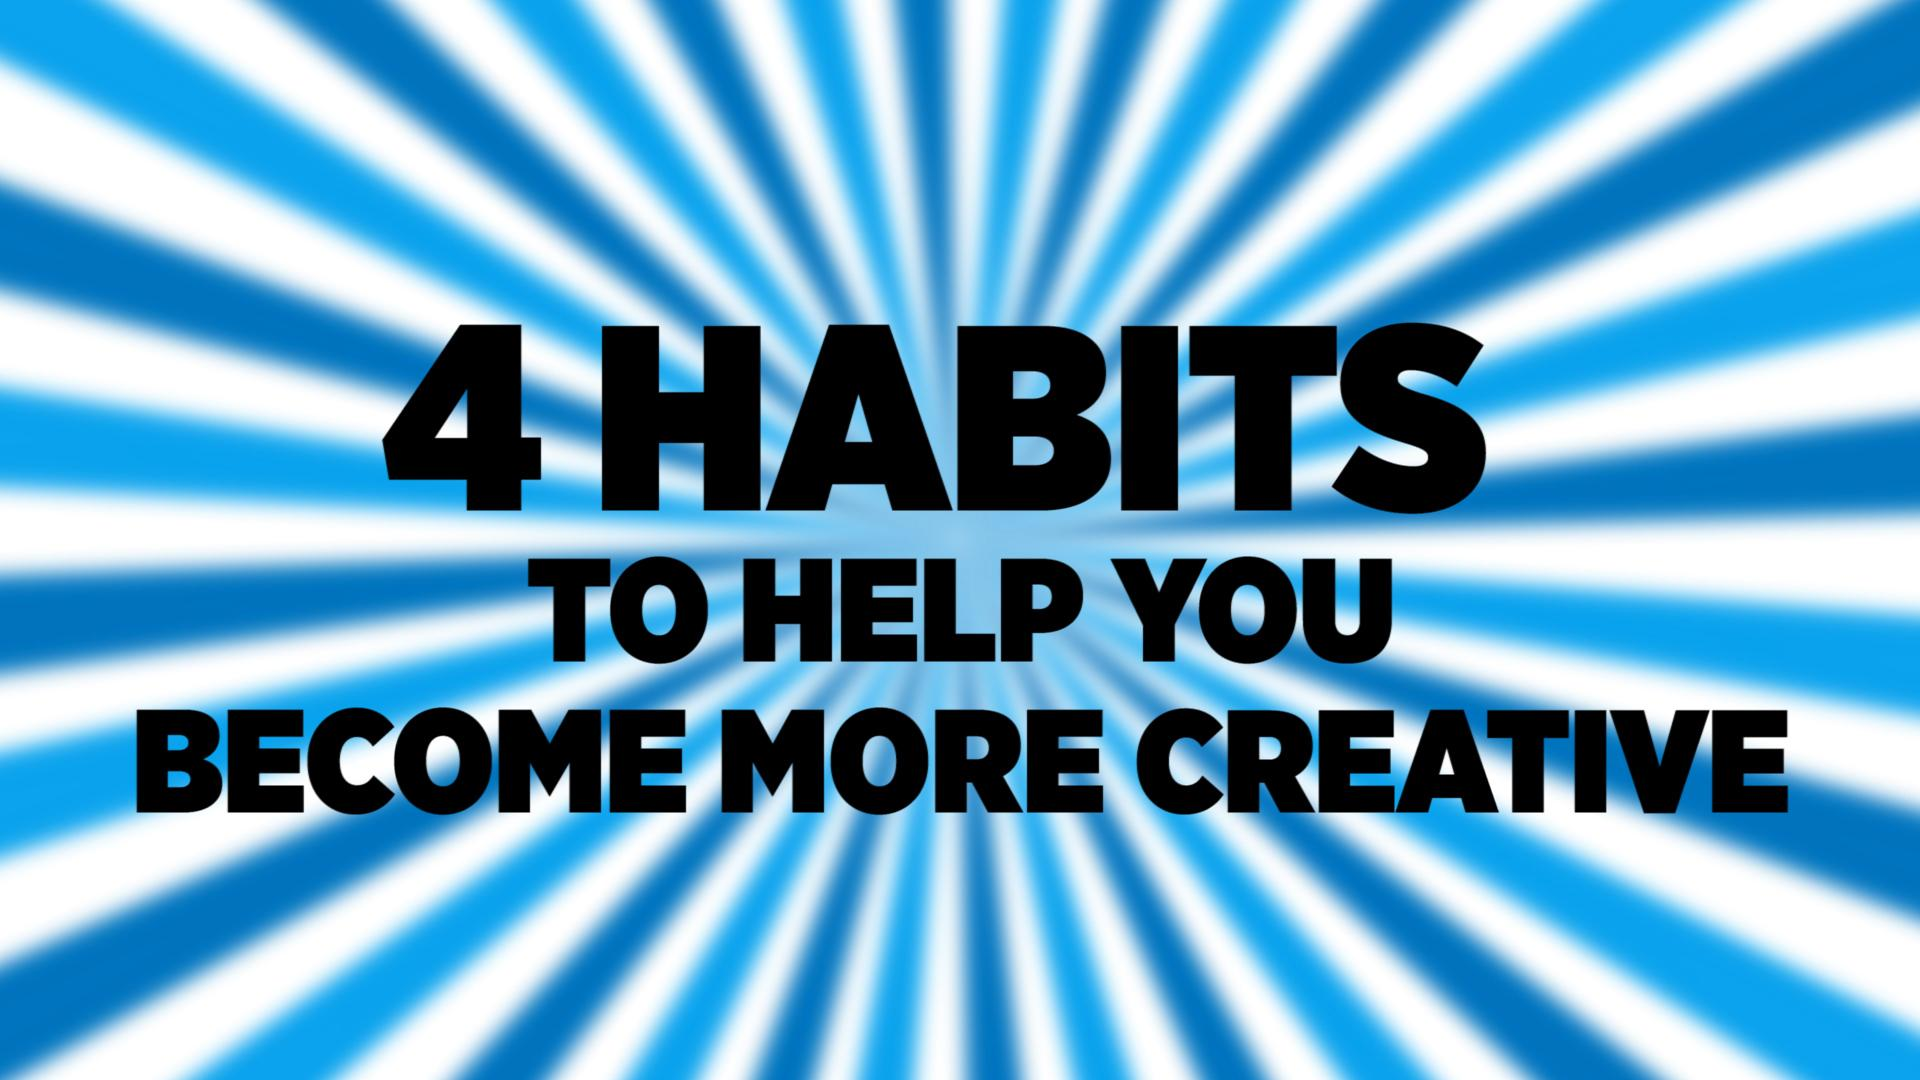 4 Habits To Help You Become More Creative